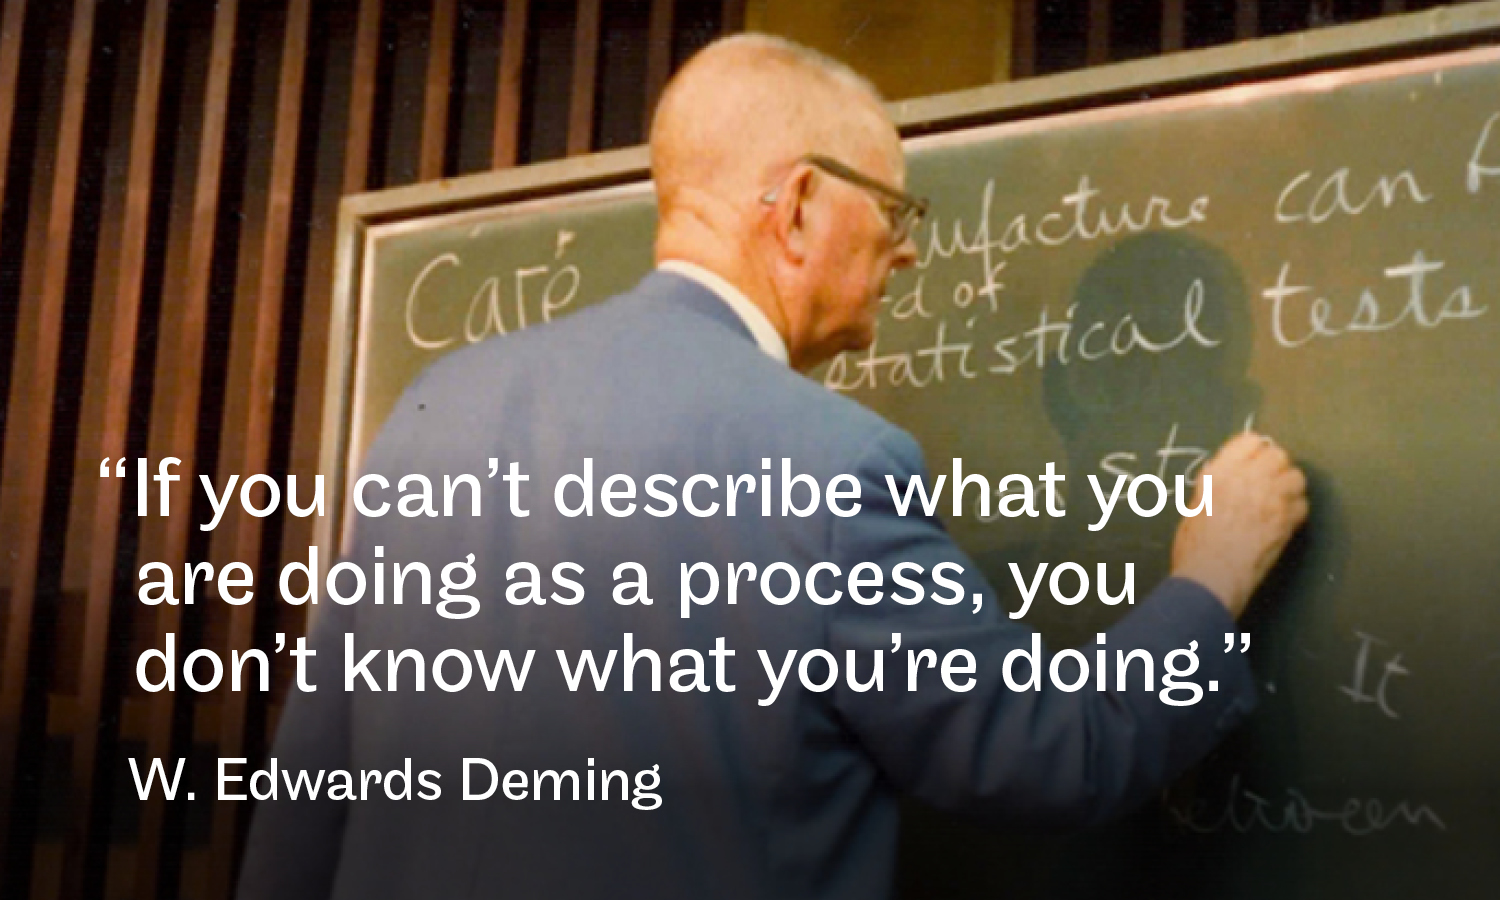 Image via  The W. Edwards Deming Institute